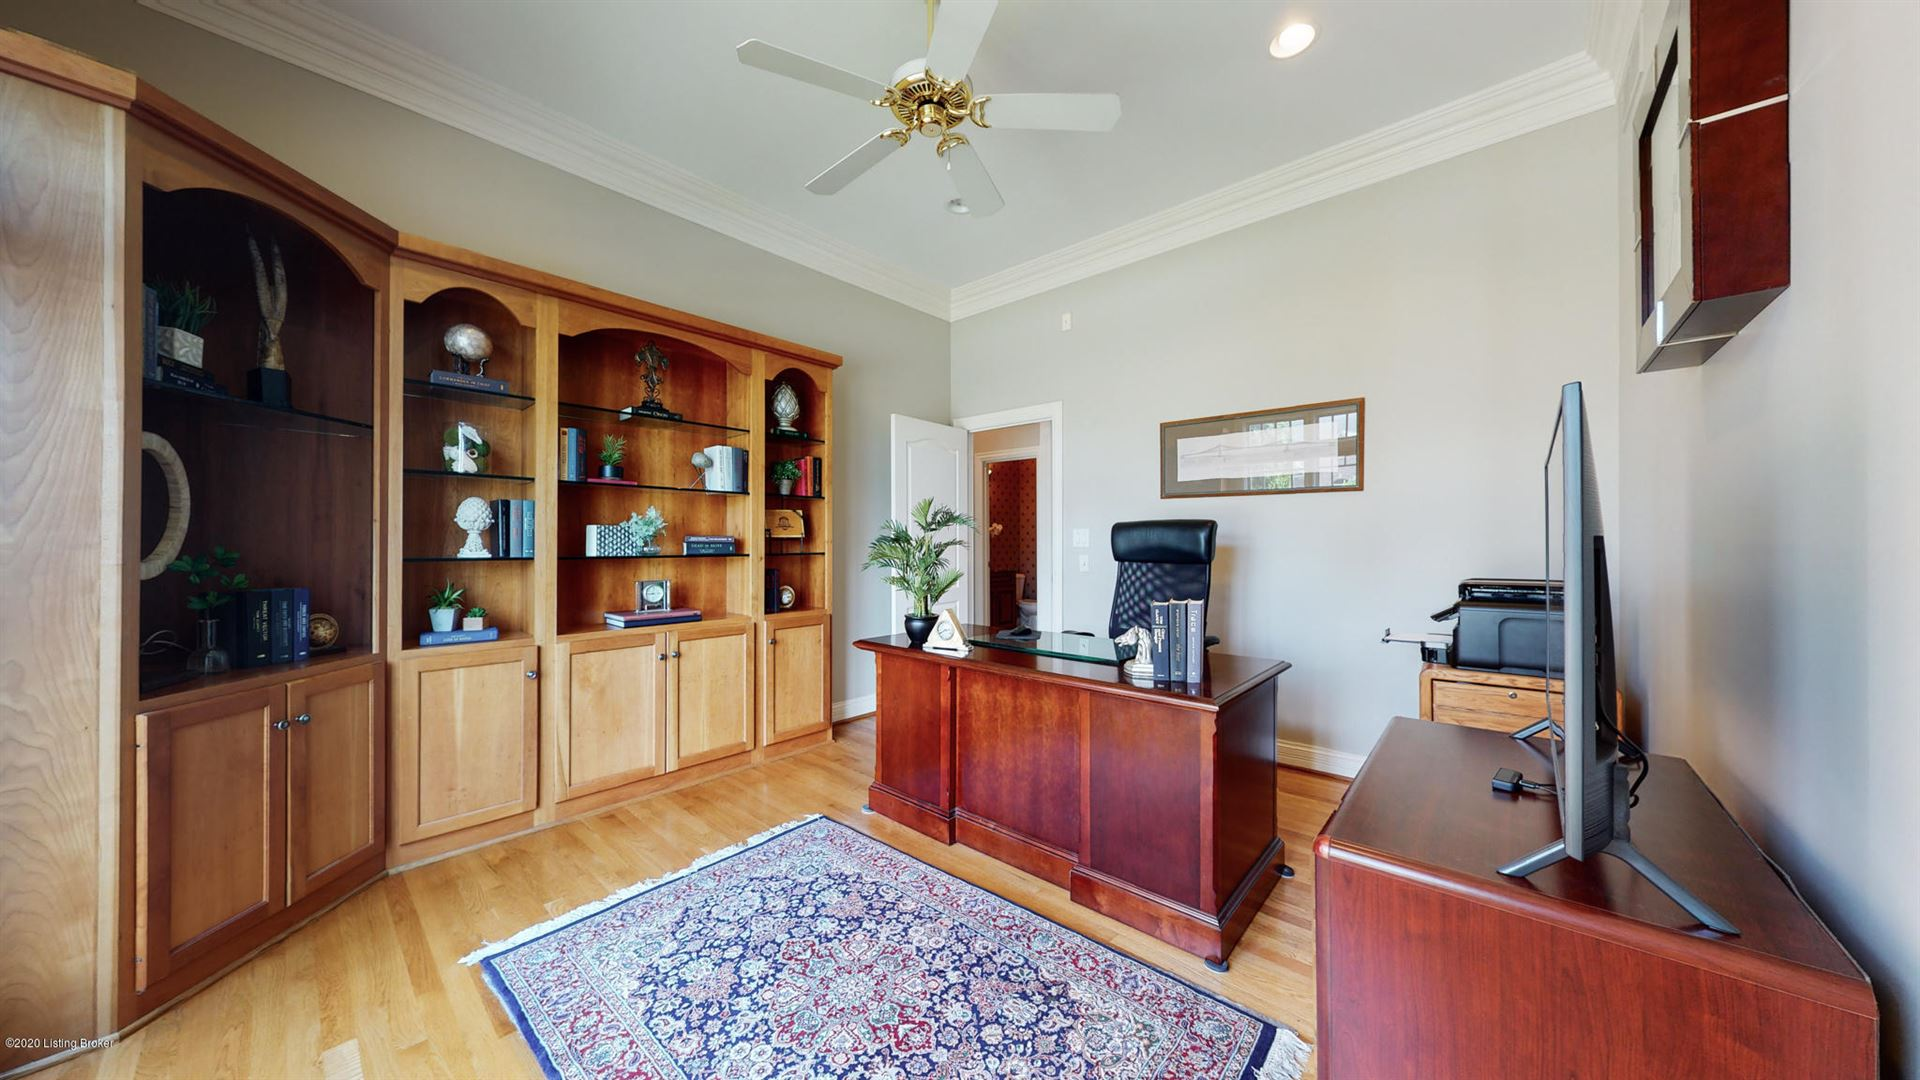 Property Image Of 2321 Arnold Palmer Blvd In Louisville, Ky